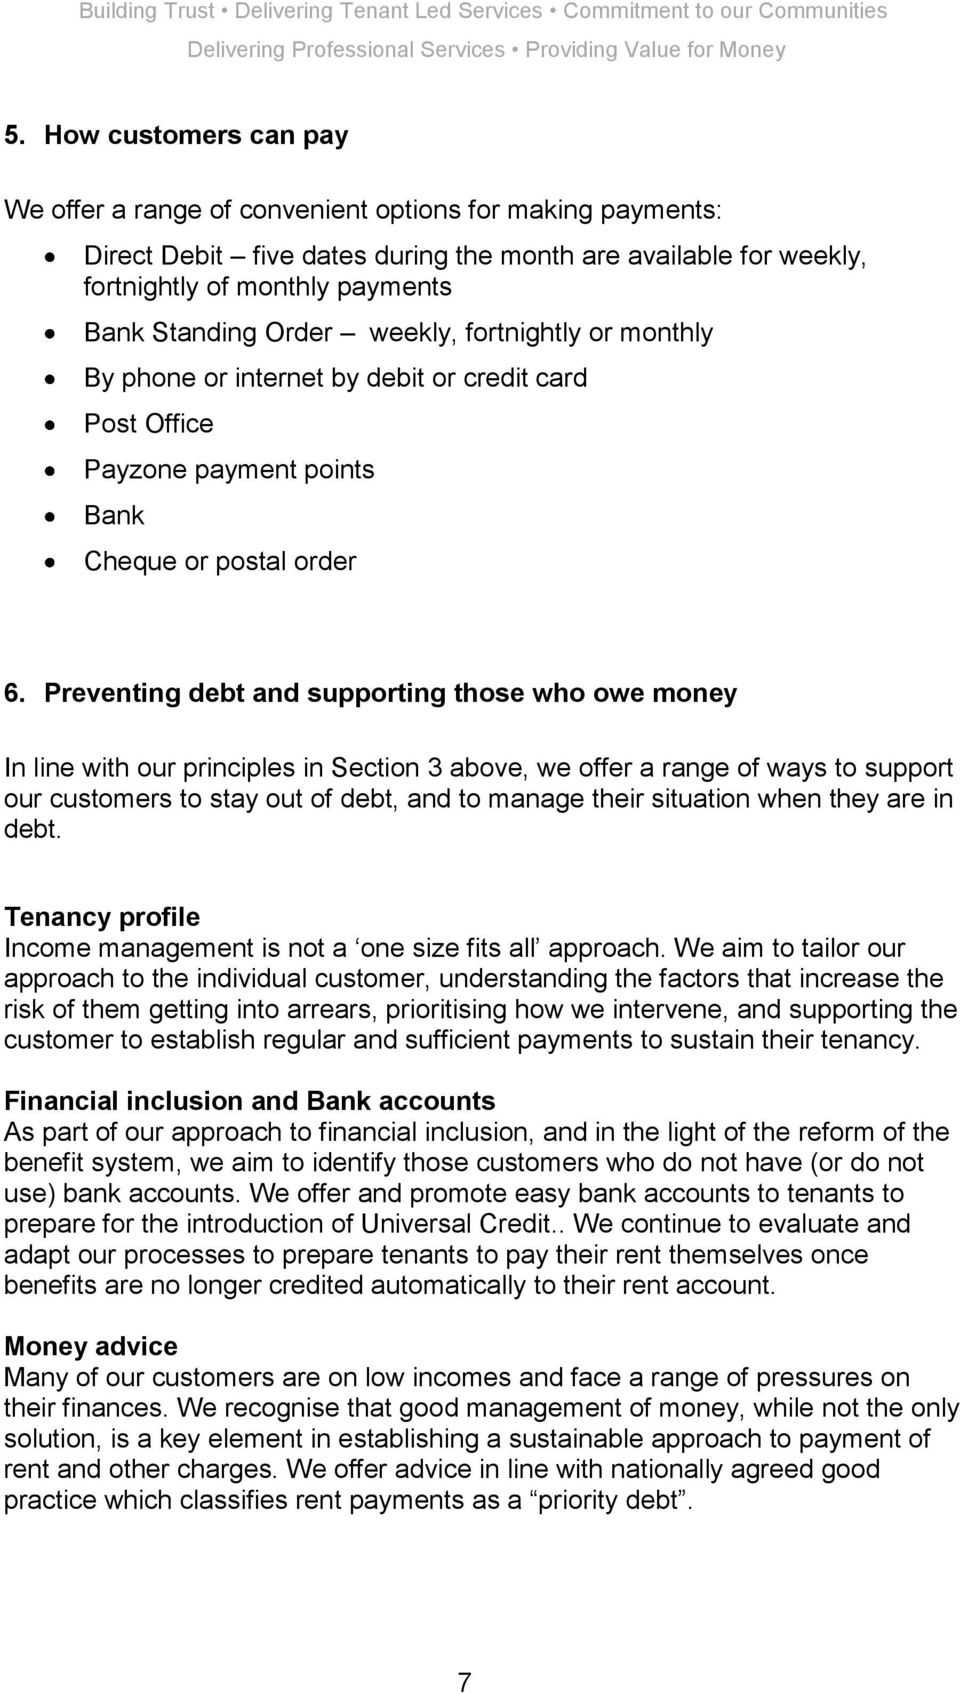 Preventing debt and supporting those who owe money In line with our principles in Section 3 above, we offer a range of ways to support our customers to stay out of debt, and to manage their situation